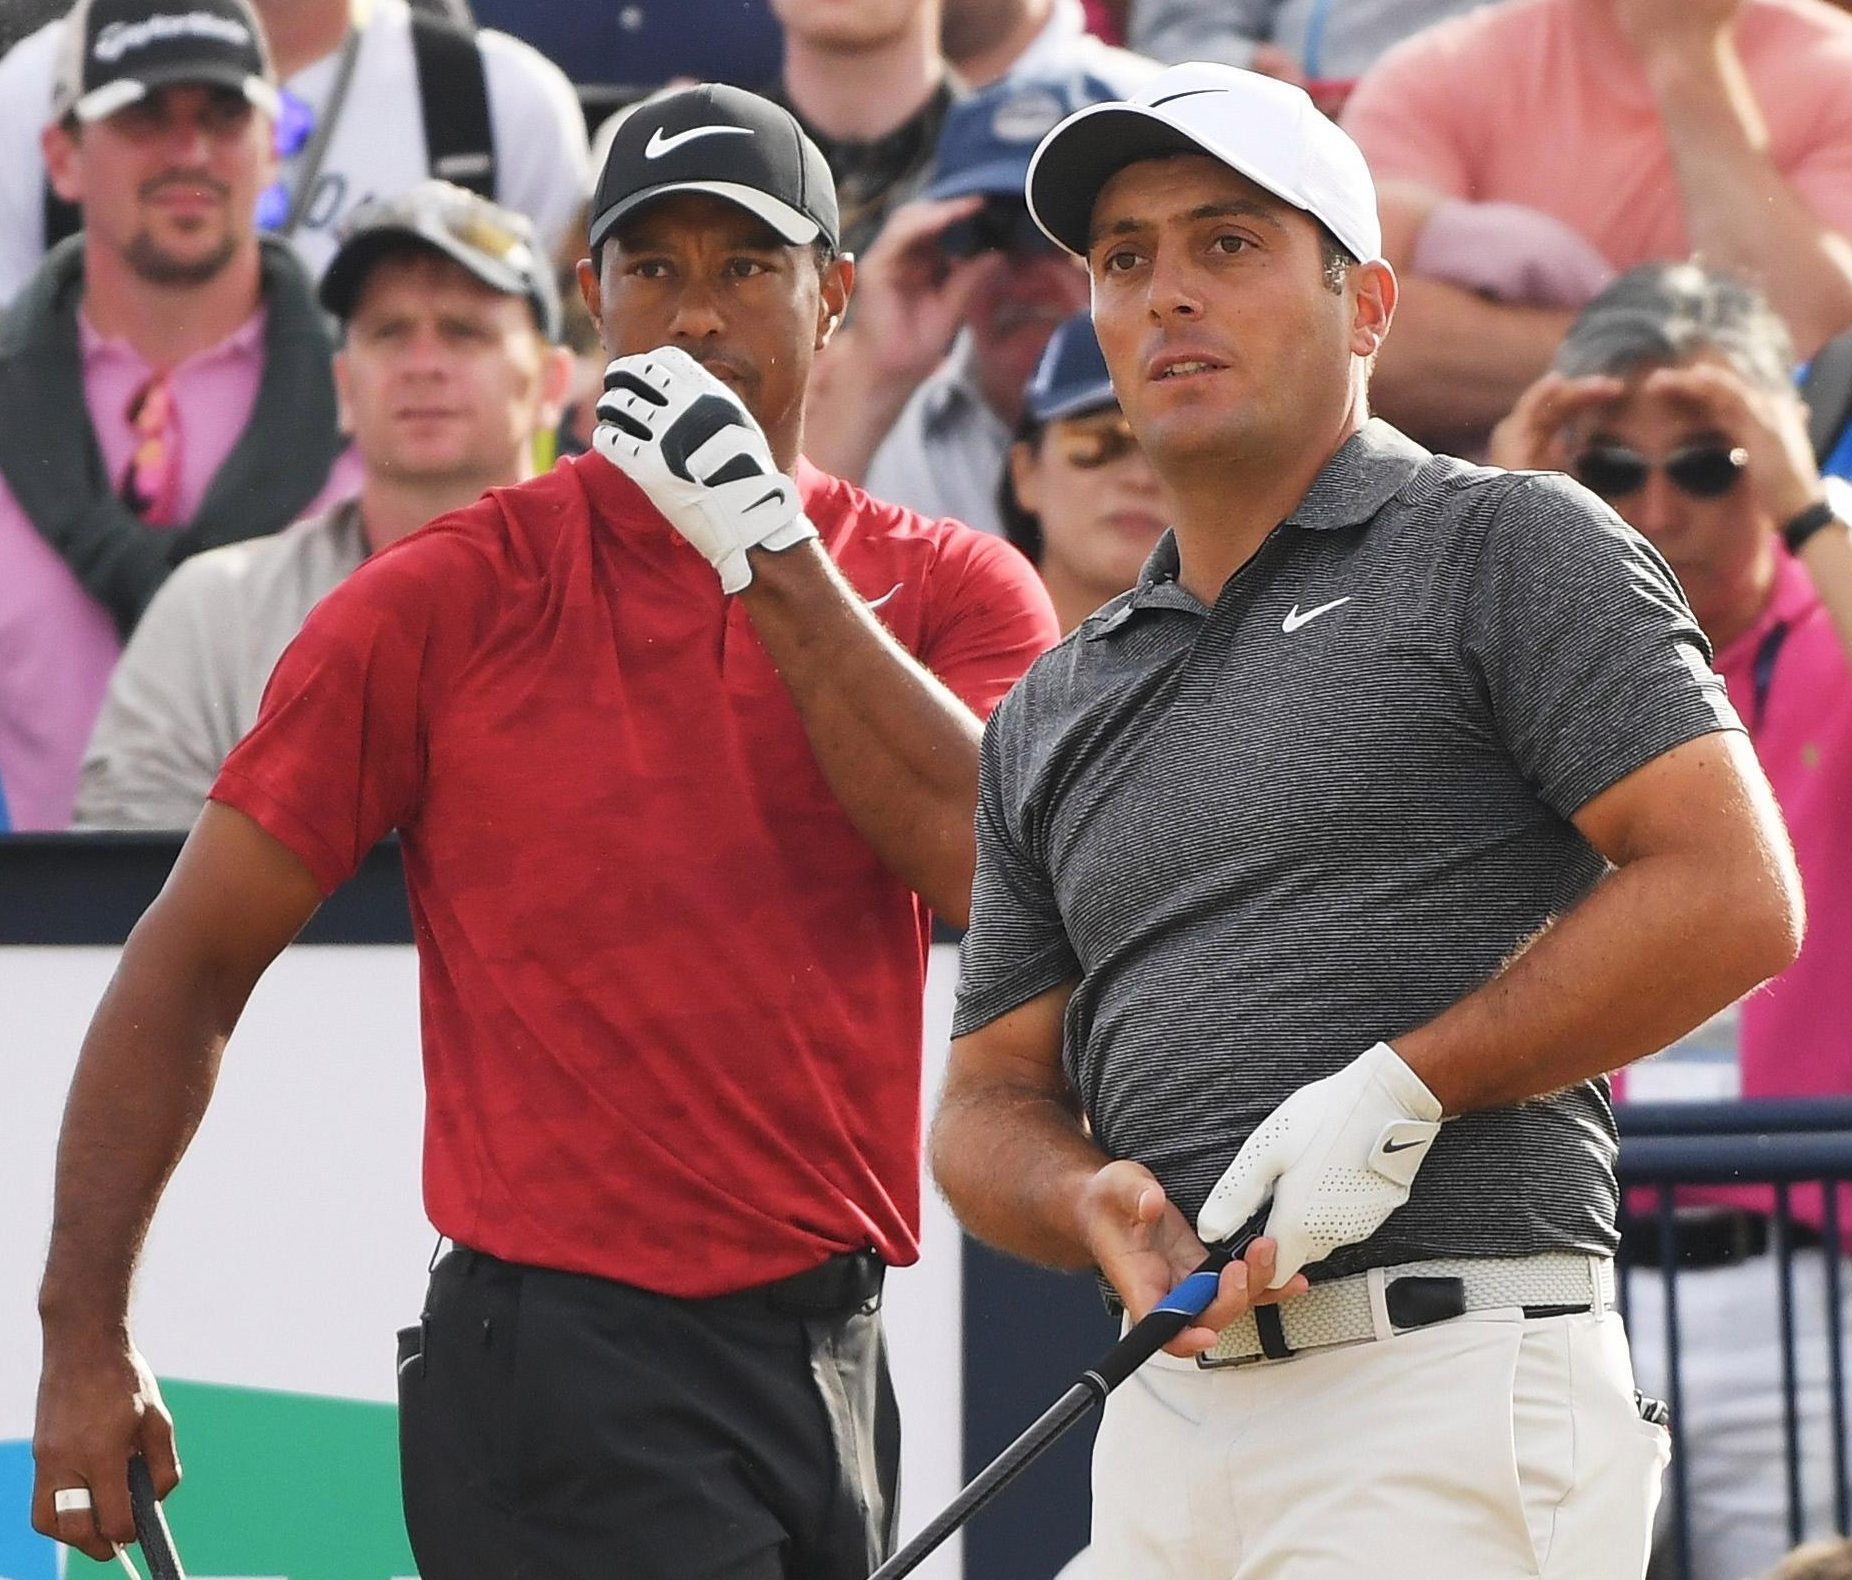 New Italian hero Francesco Molinari won by two shots but Tiger Woods looked a man on a mission during the first nine holes of the final round at Carnoustie